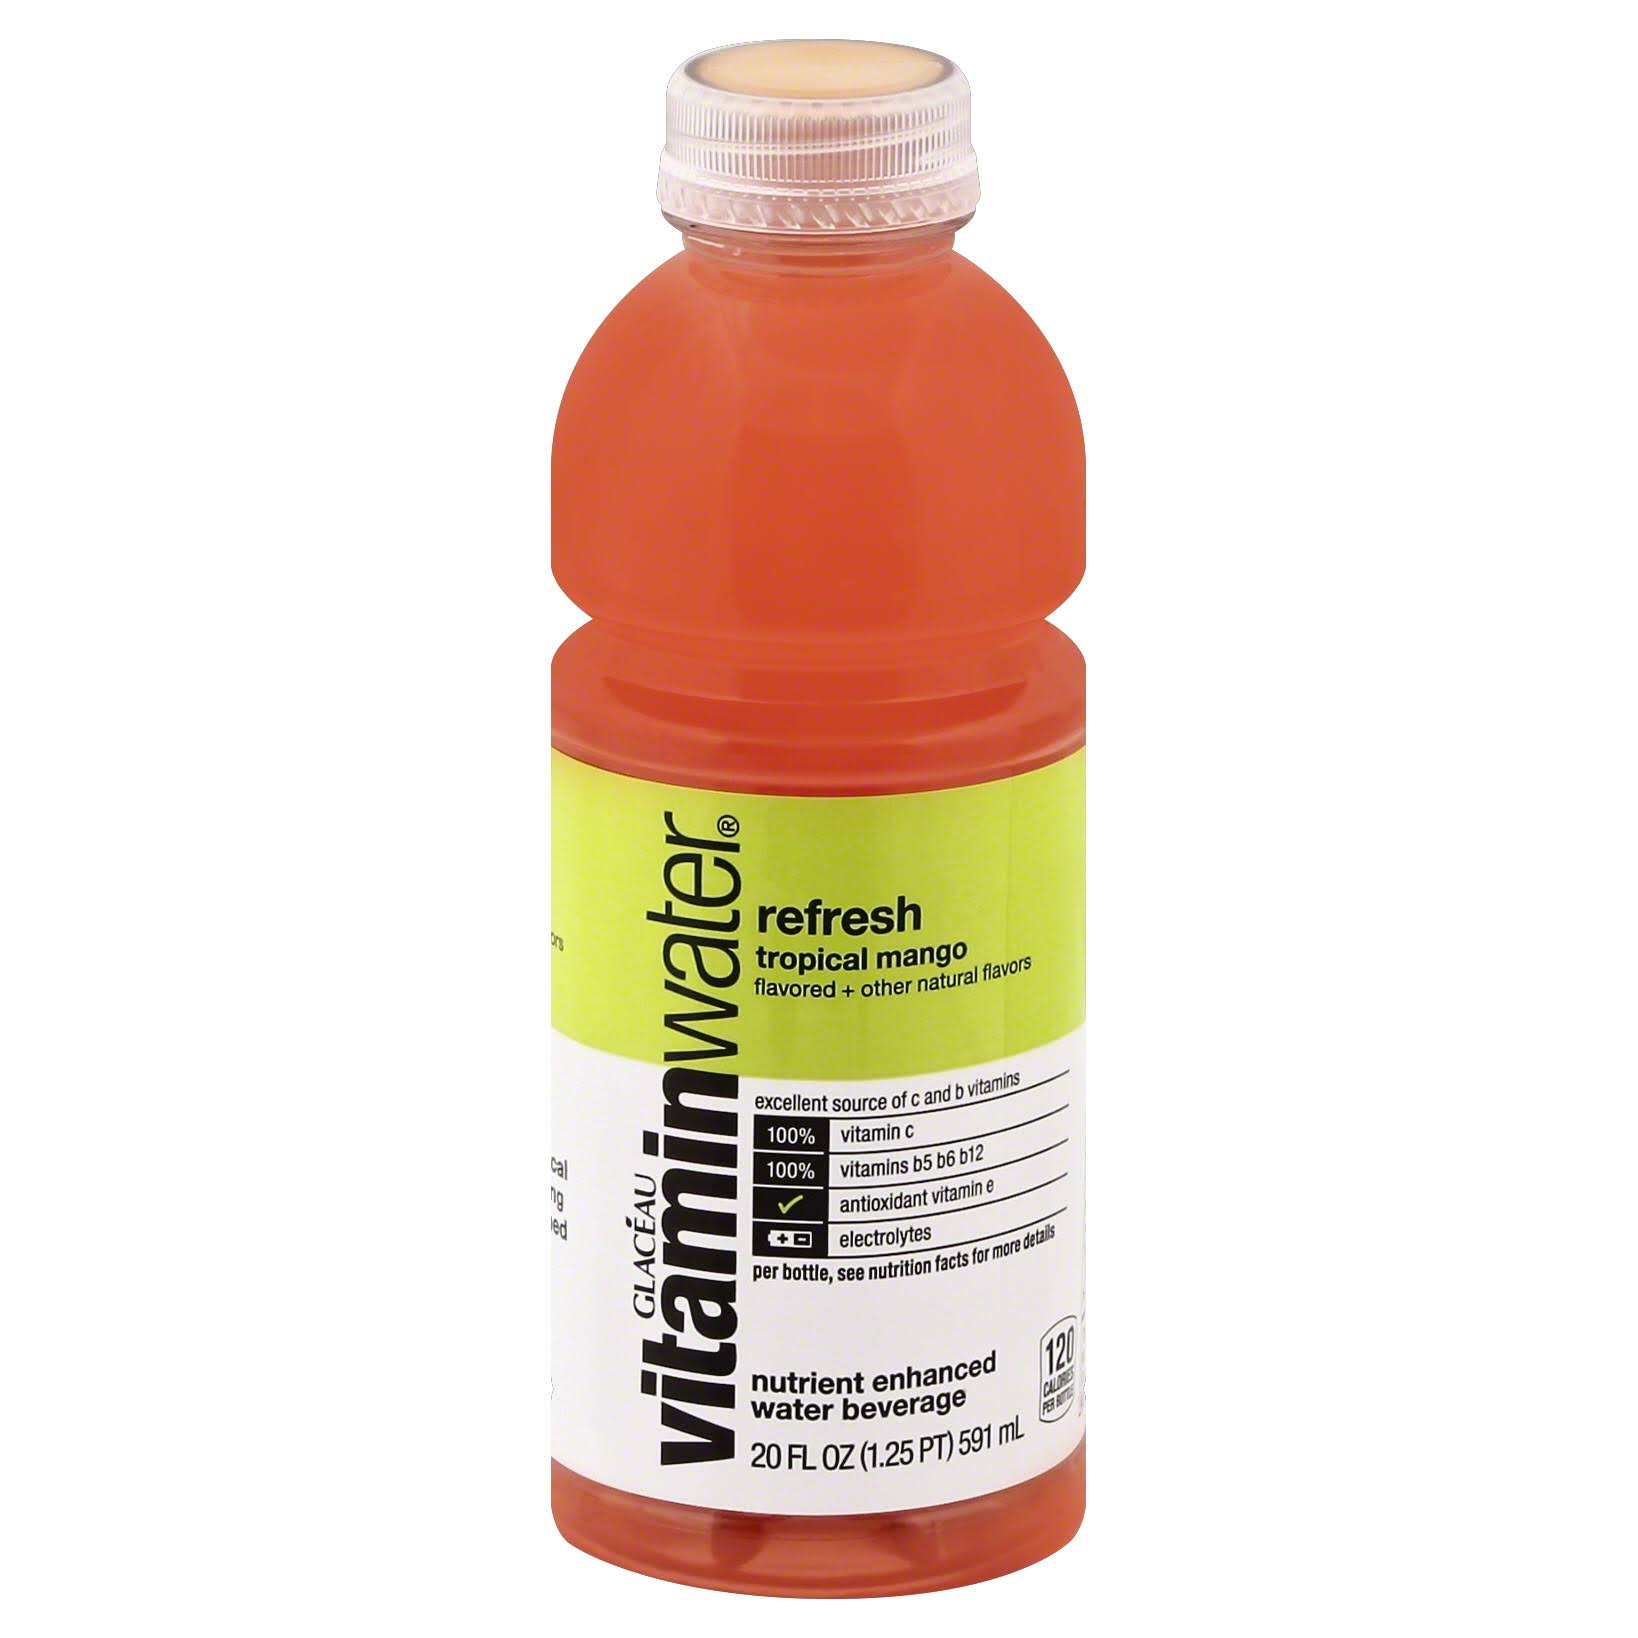 Glaceau Vitaminwater Refresh - Tropical Mango